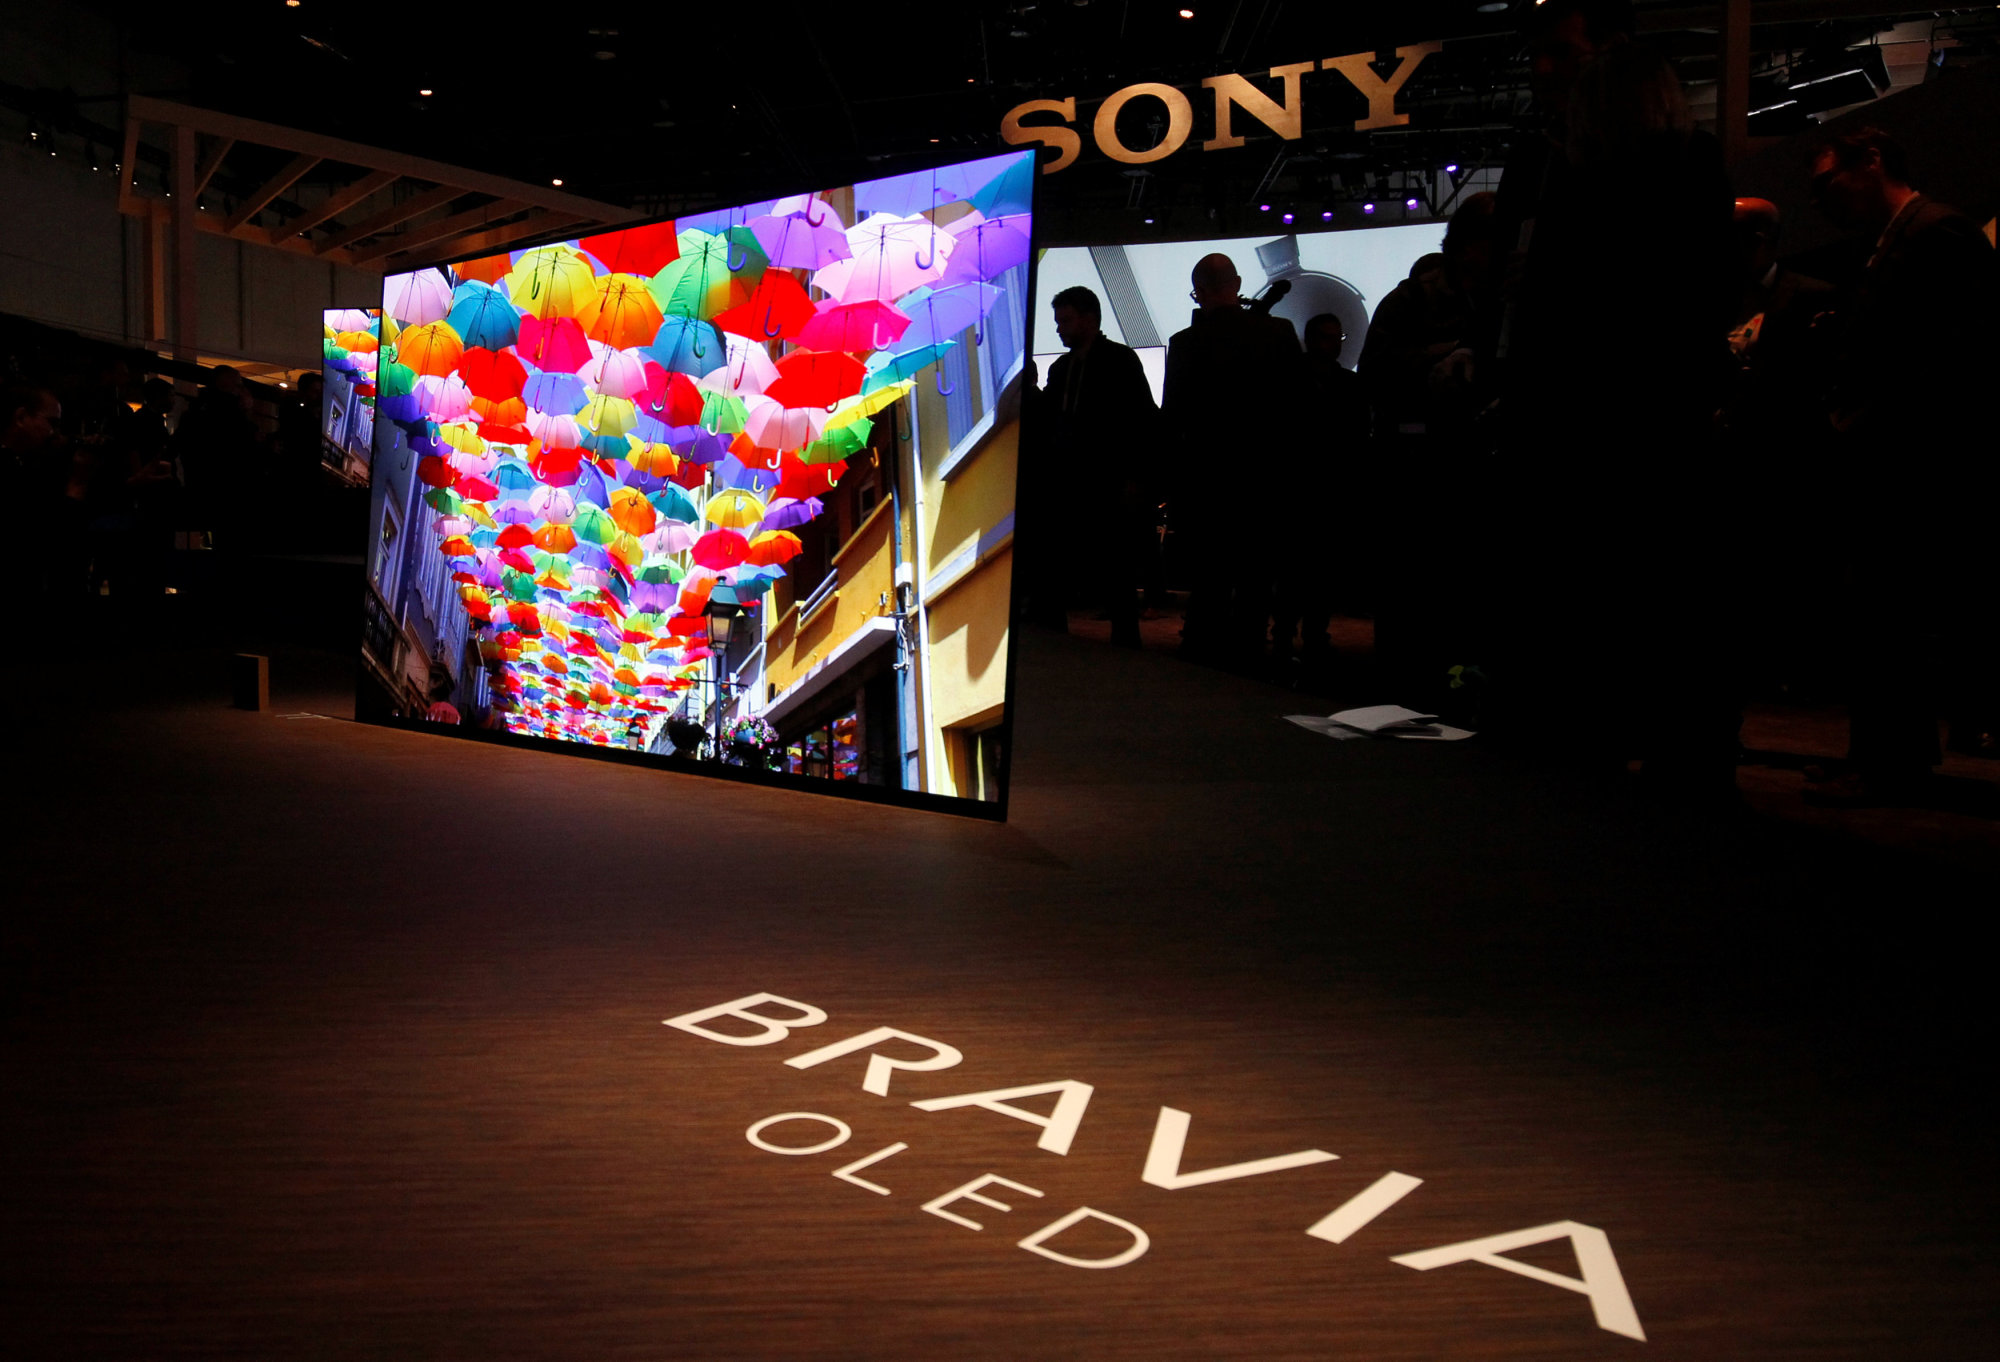 Sony sets itself up for record annual profit, but strikes cautious tone